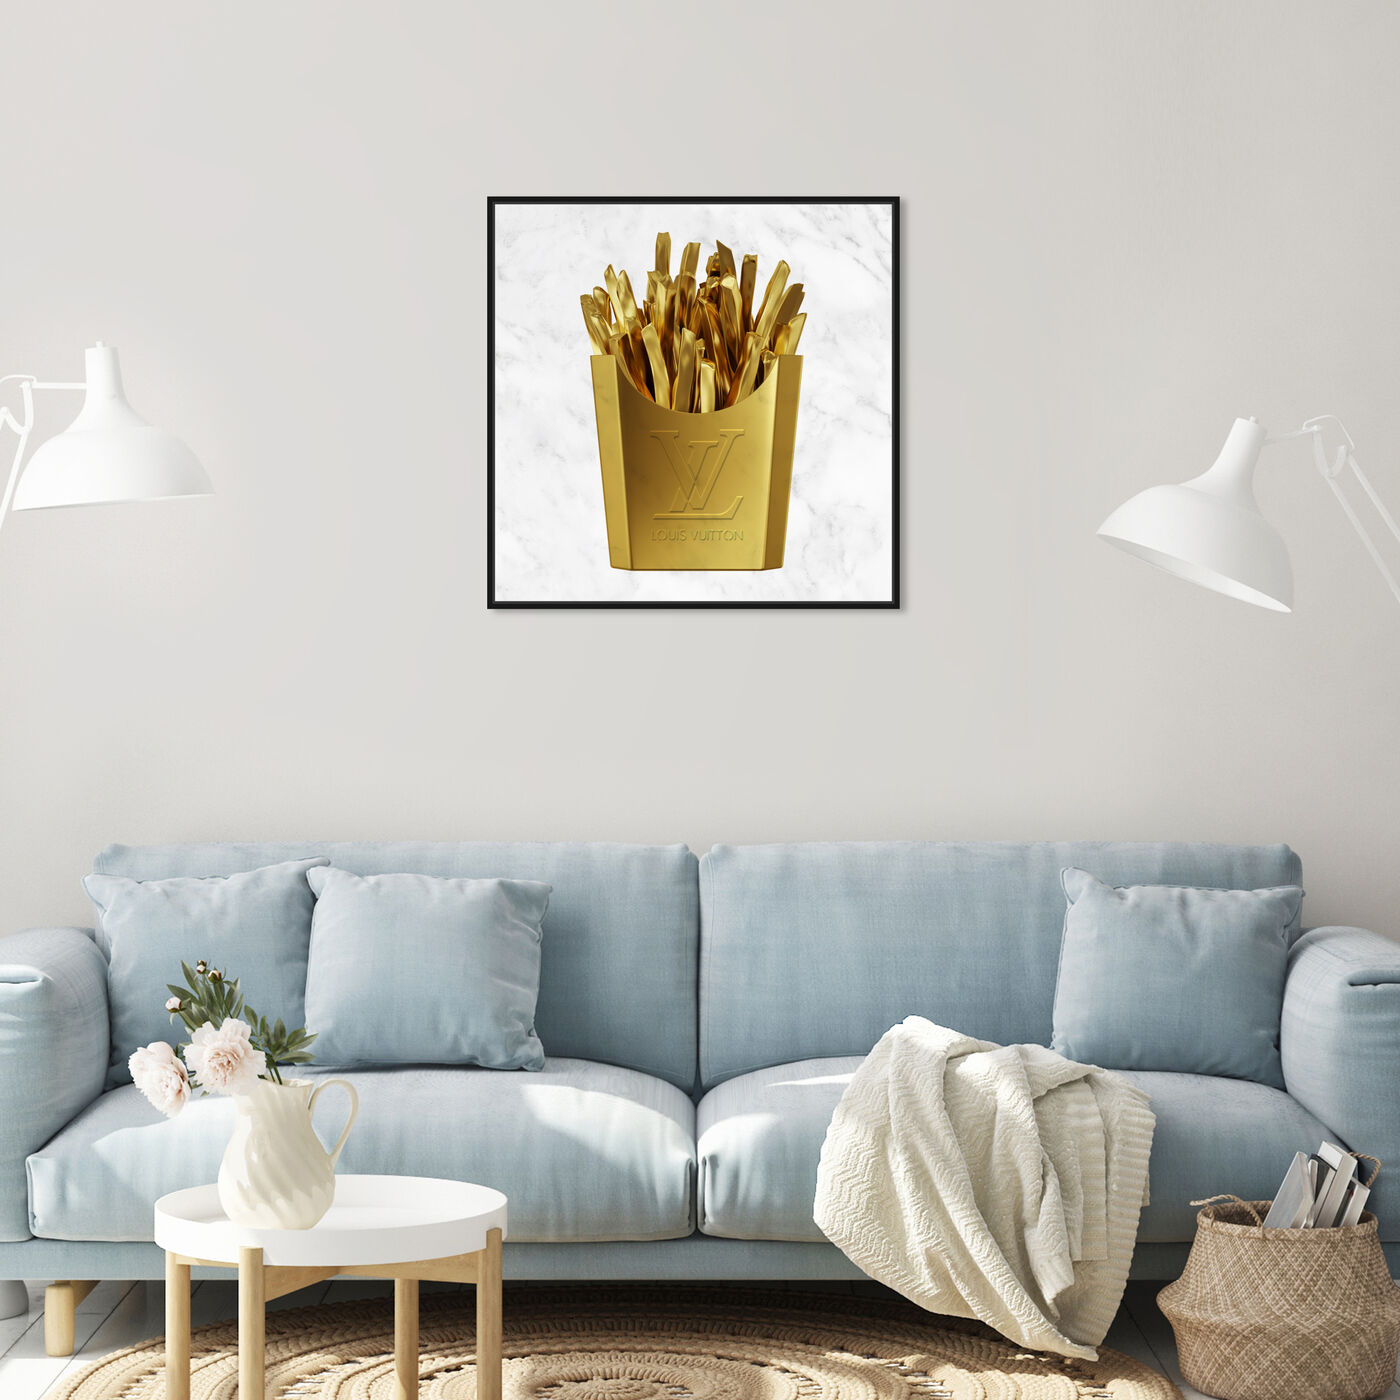 Hanging view of Designer Fries featuring fashion and glam and lifestyle art.